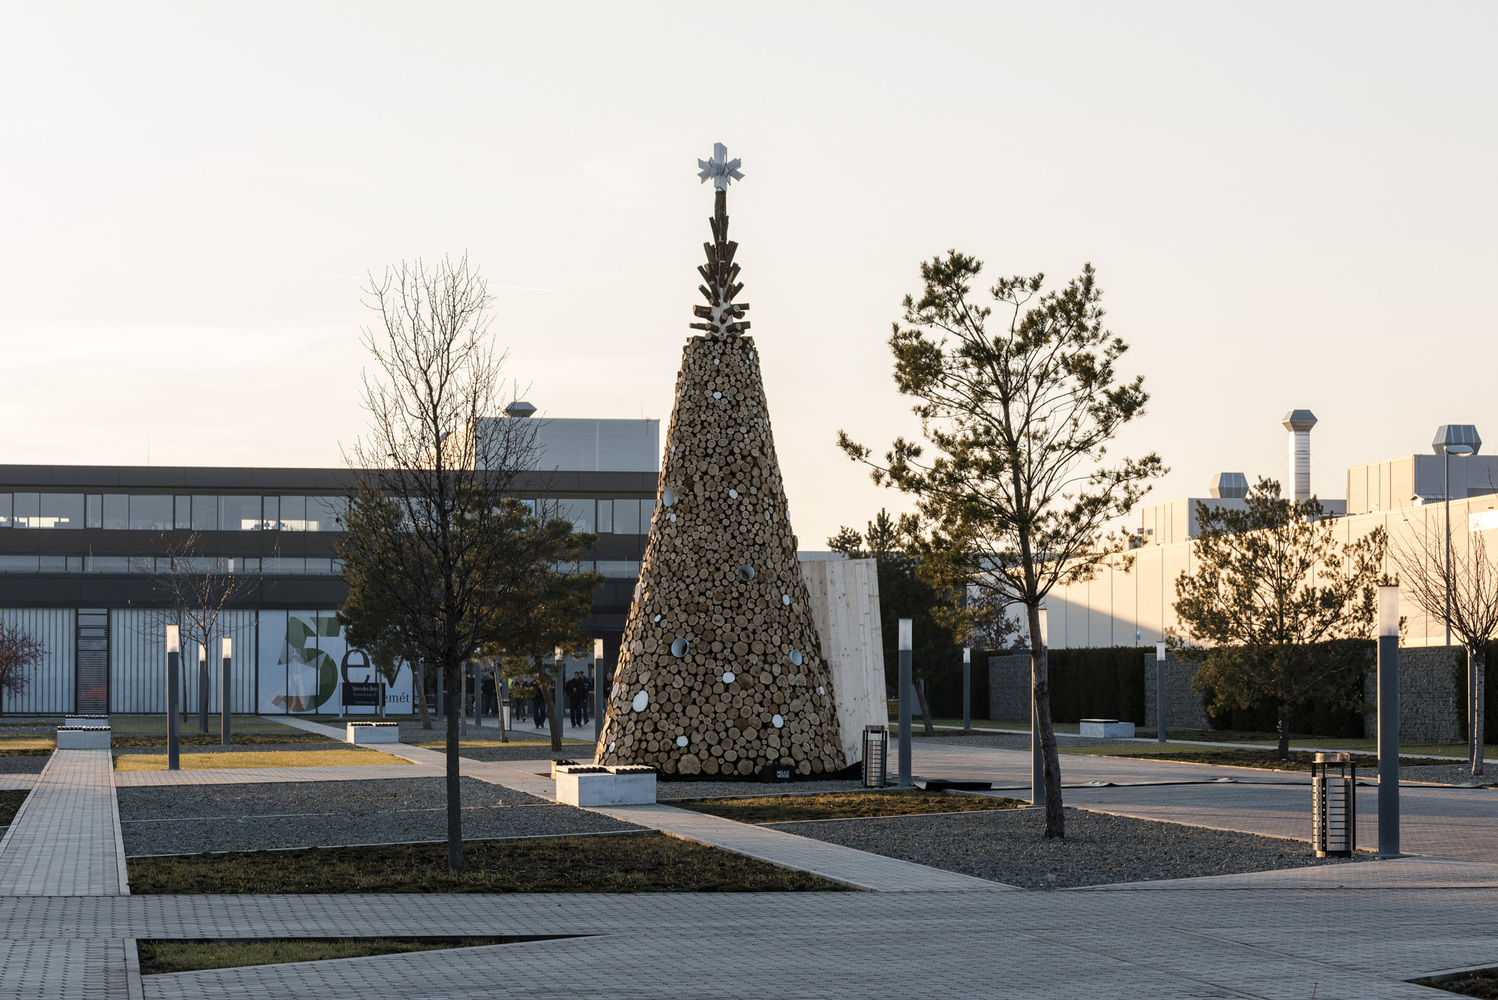 Hello Wood Builds 5 Wooden Christmas Trees in Cities Throughout Europe,Kecskemét. Image © Máté Lakos